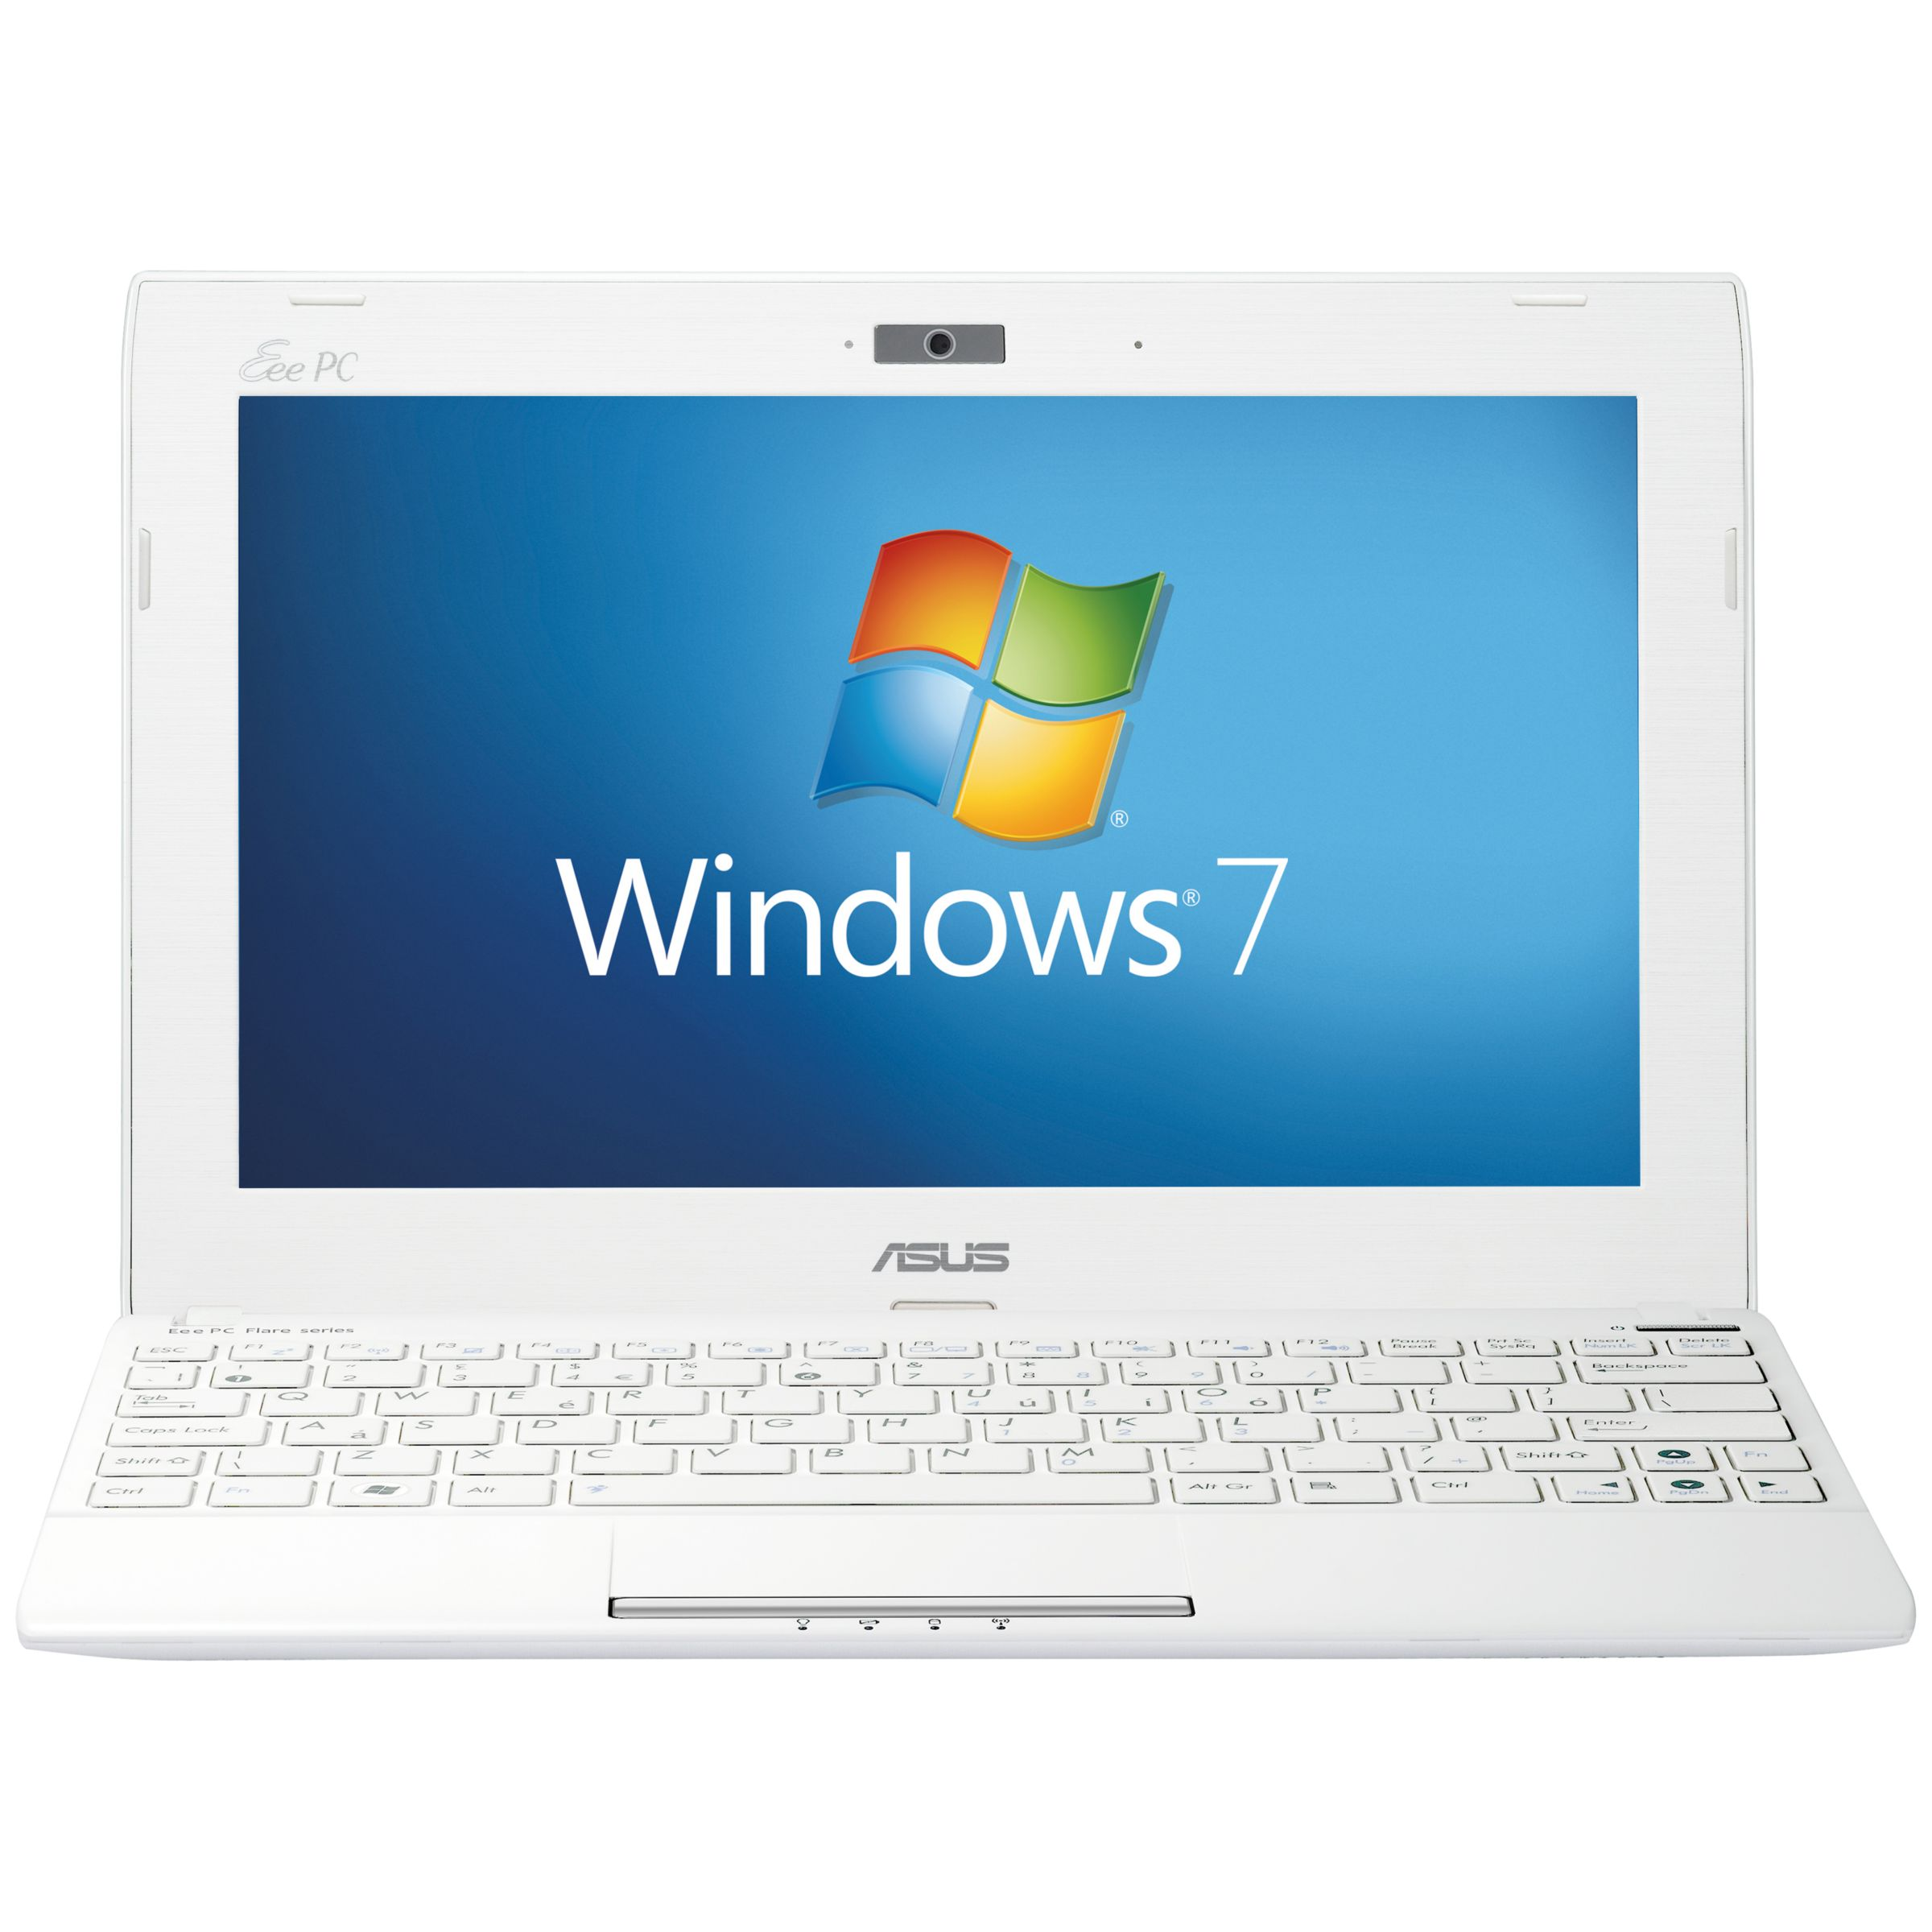 Asus 1025c Netbook, Intel Atom, 1.86ghz, 1gb Ram, 320gb, 12 Hours Battery Life, 10.1'', White